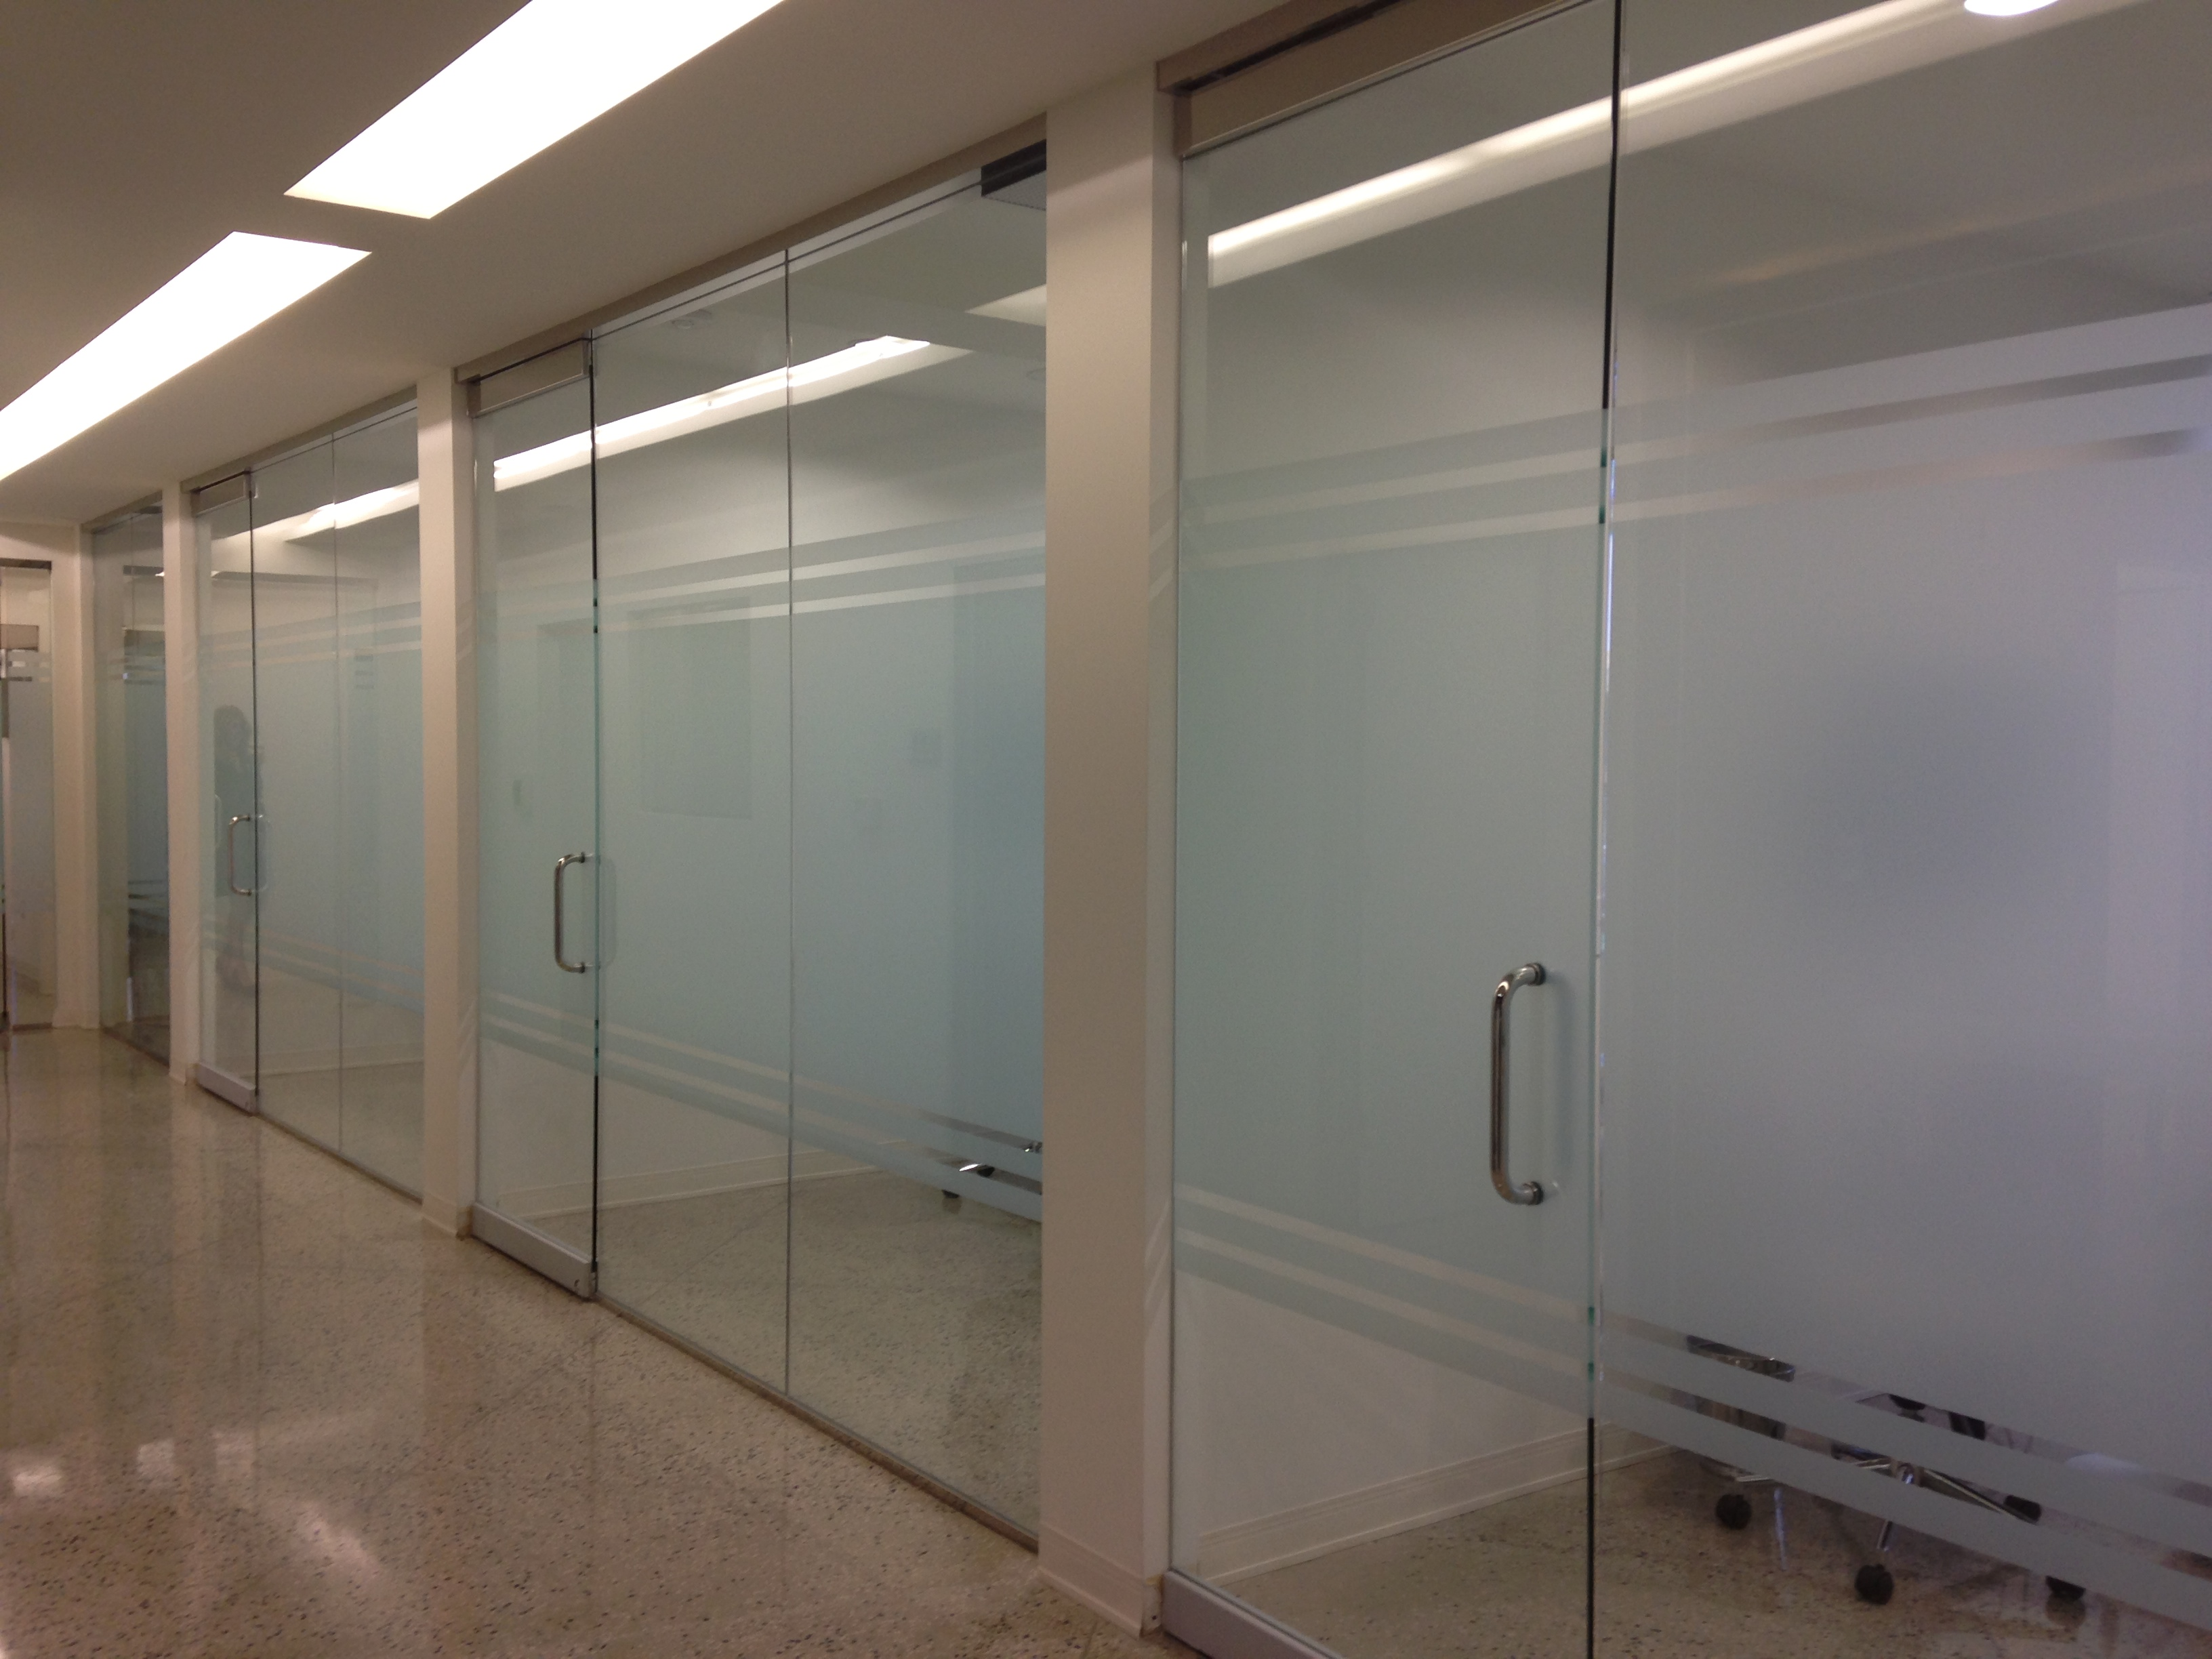 M Decorative Window Film